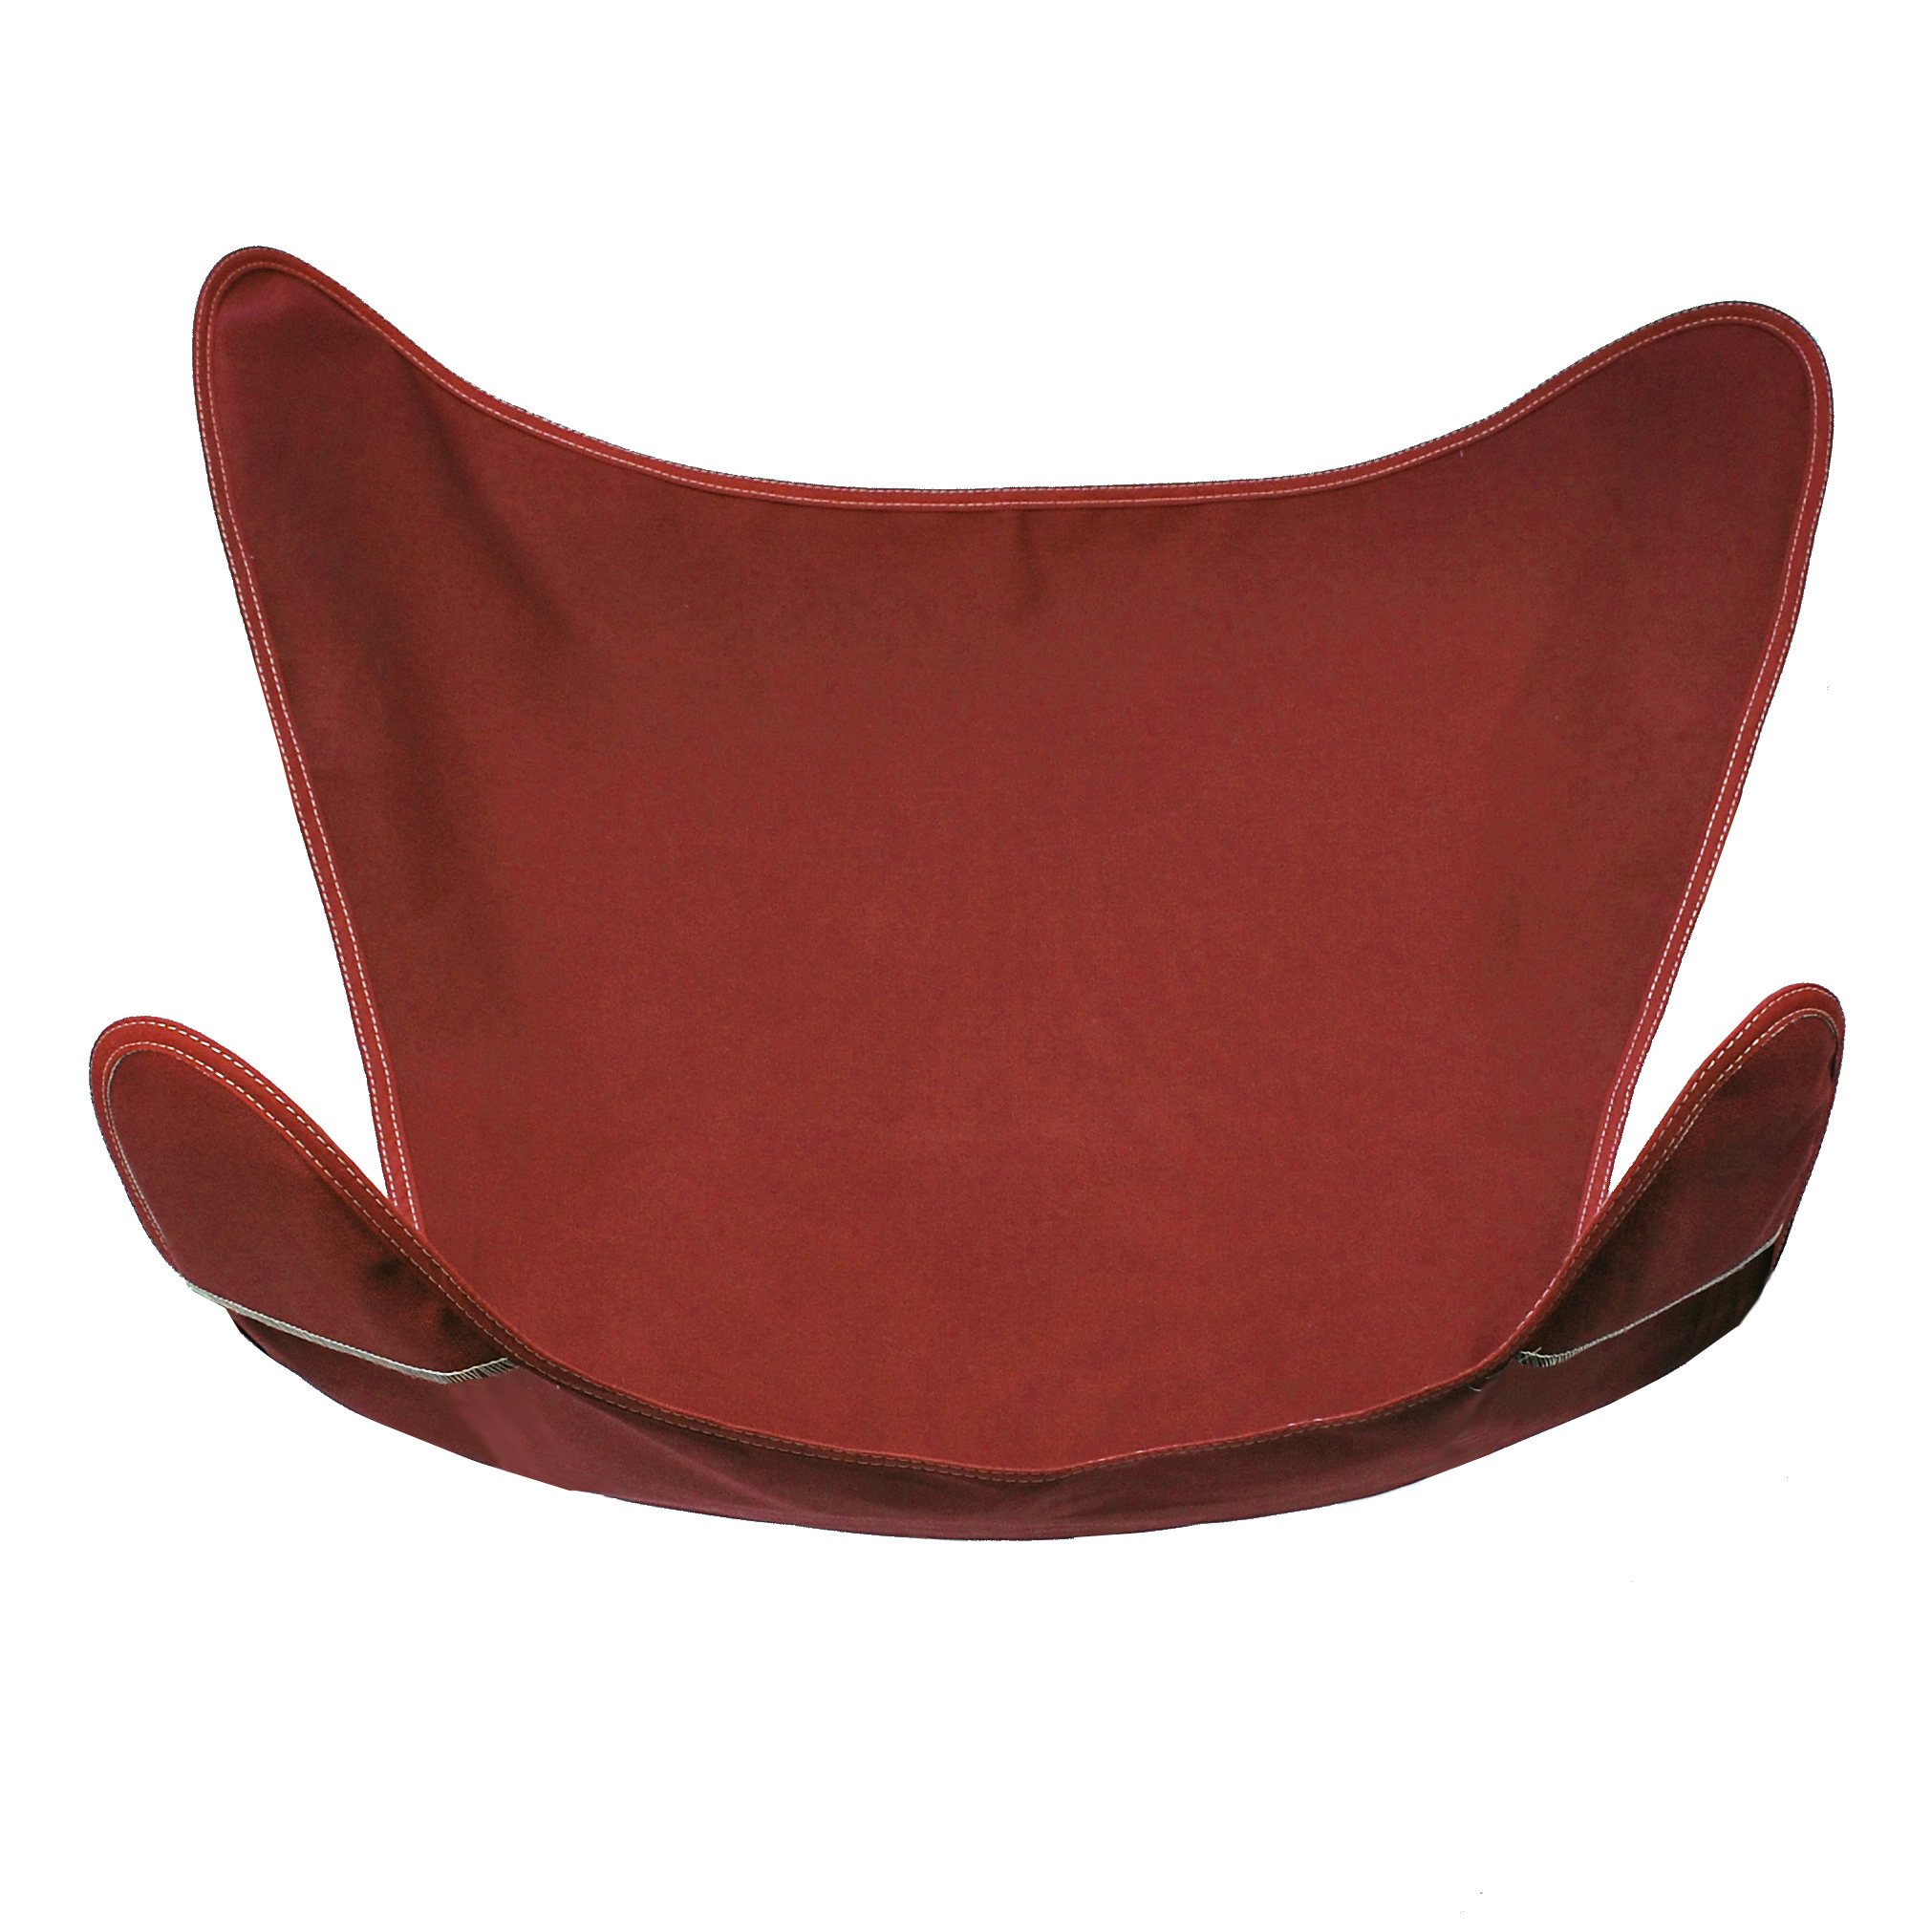 Replacement Cover for Butterfly Chair - Burgundy